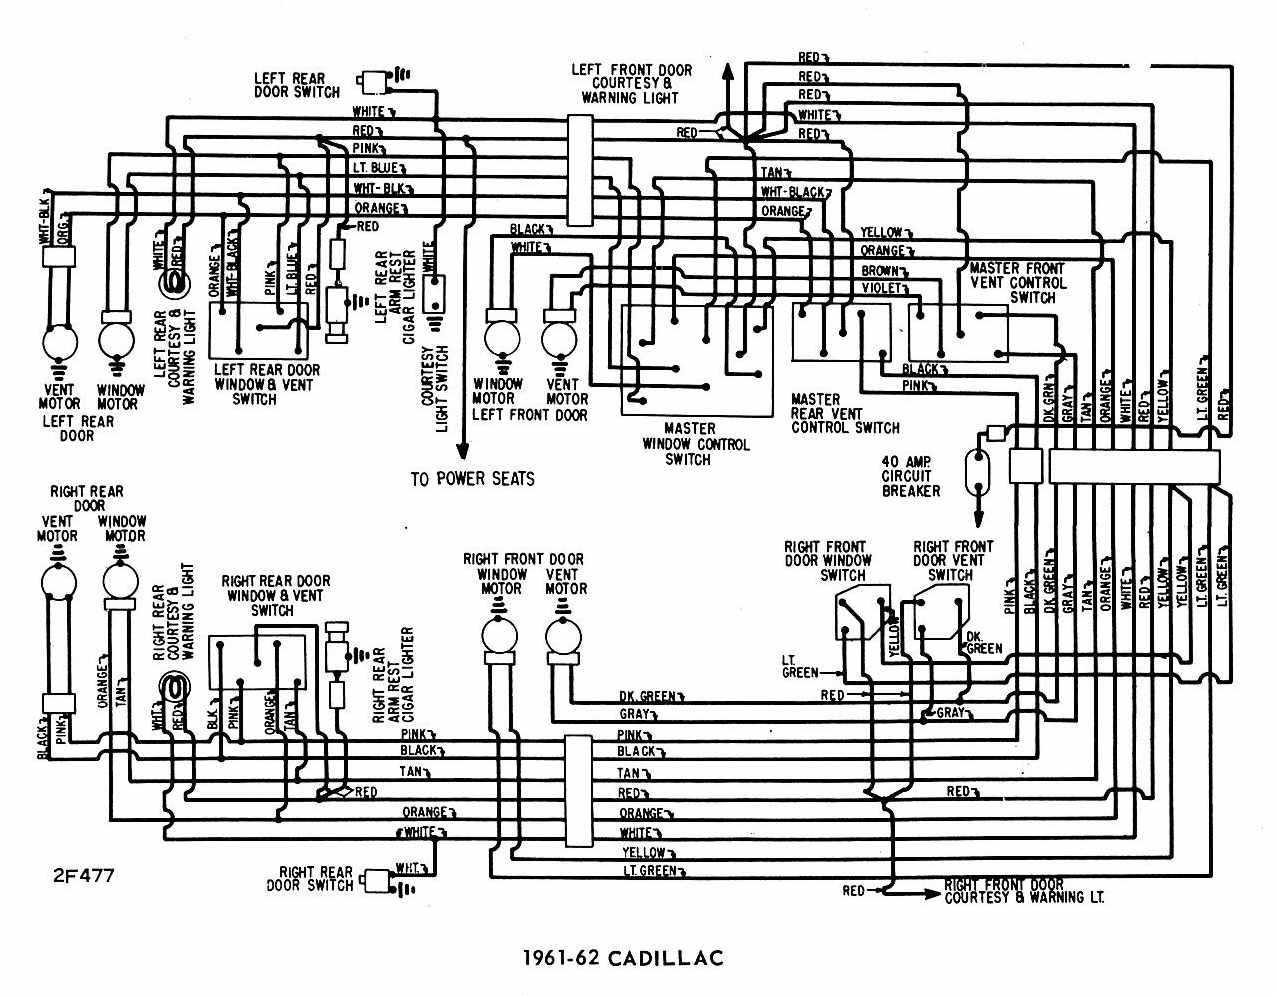 6119r Need Radio Wiring Diagram 2000 Cadillac Esclades Bose Radio additionally Watch likewise Chevrolet V8 Trucks 1981 1987 furthermore Toyota Camry 1 8 1993 Specs And Images in addition RepairGuideContent. on 2005 cadillac deville problems